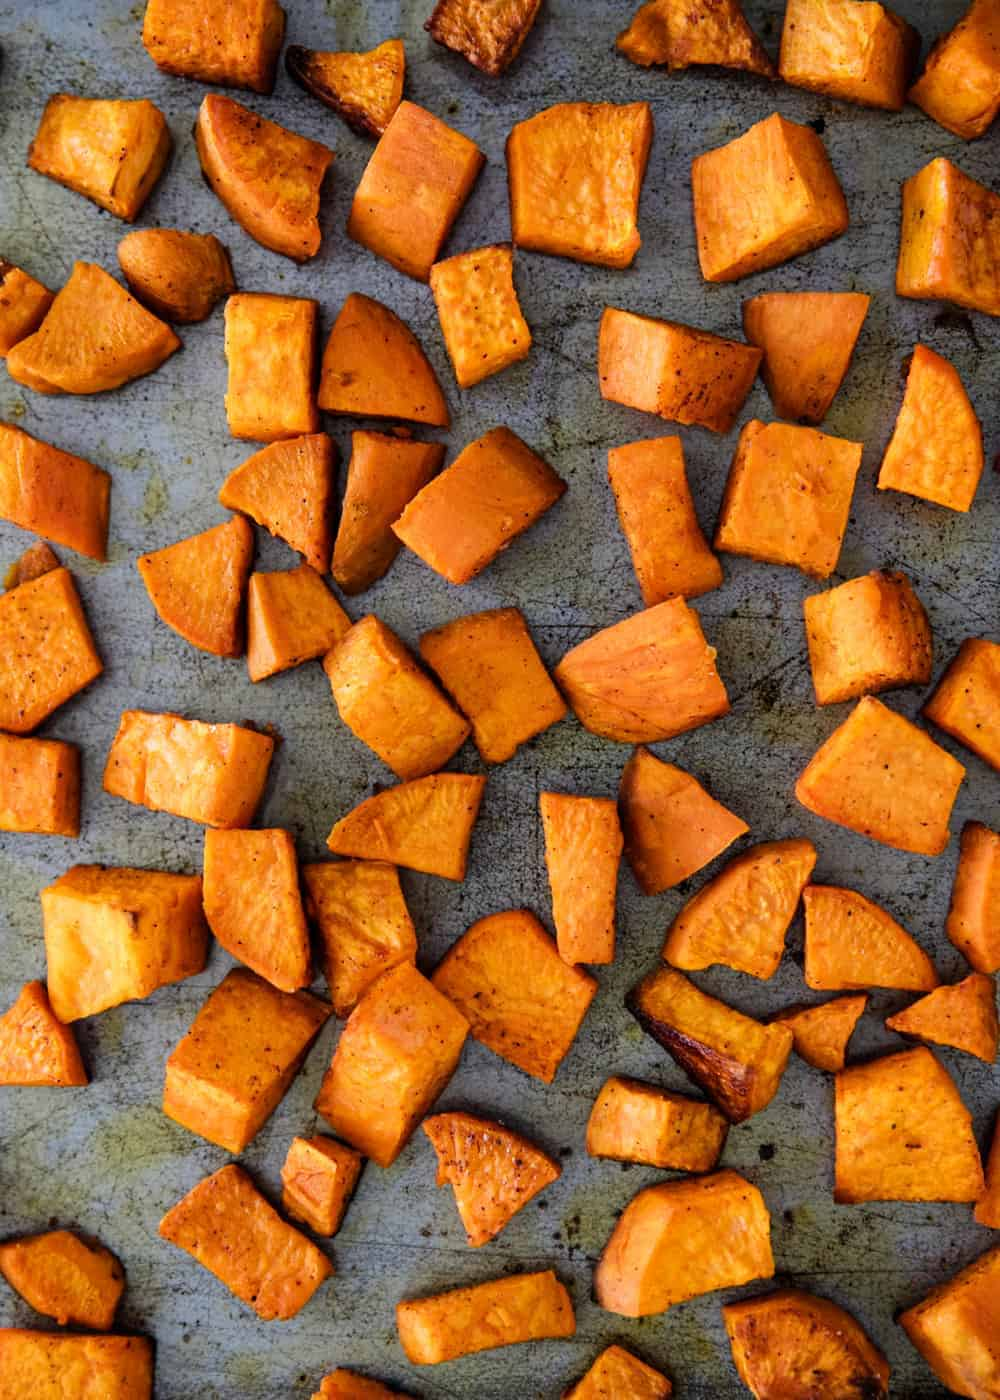 oven roasted sweet potatoes on baking sheet